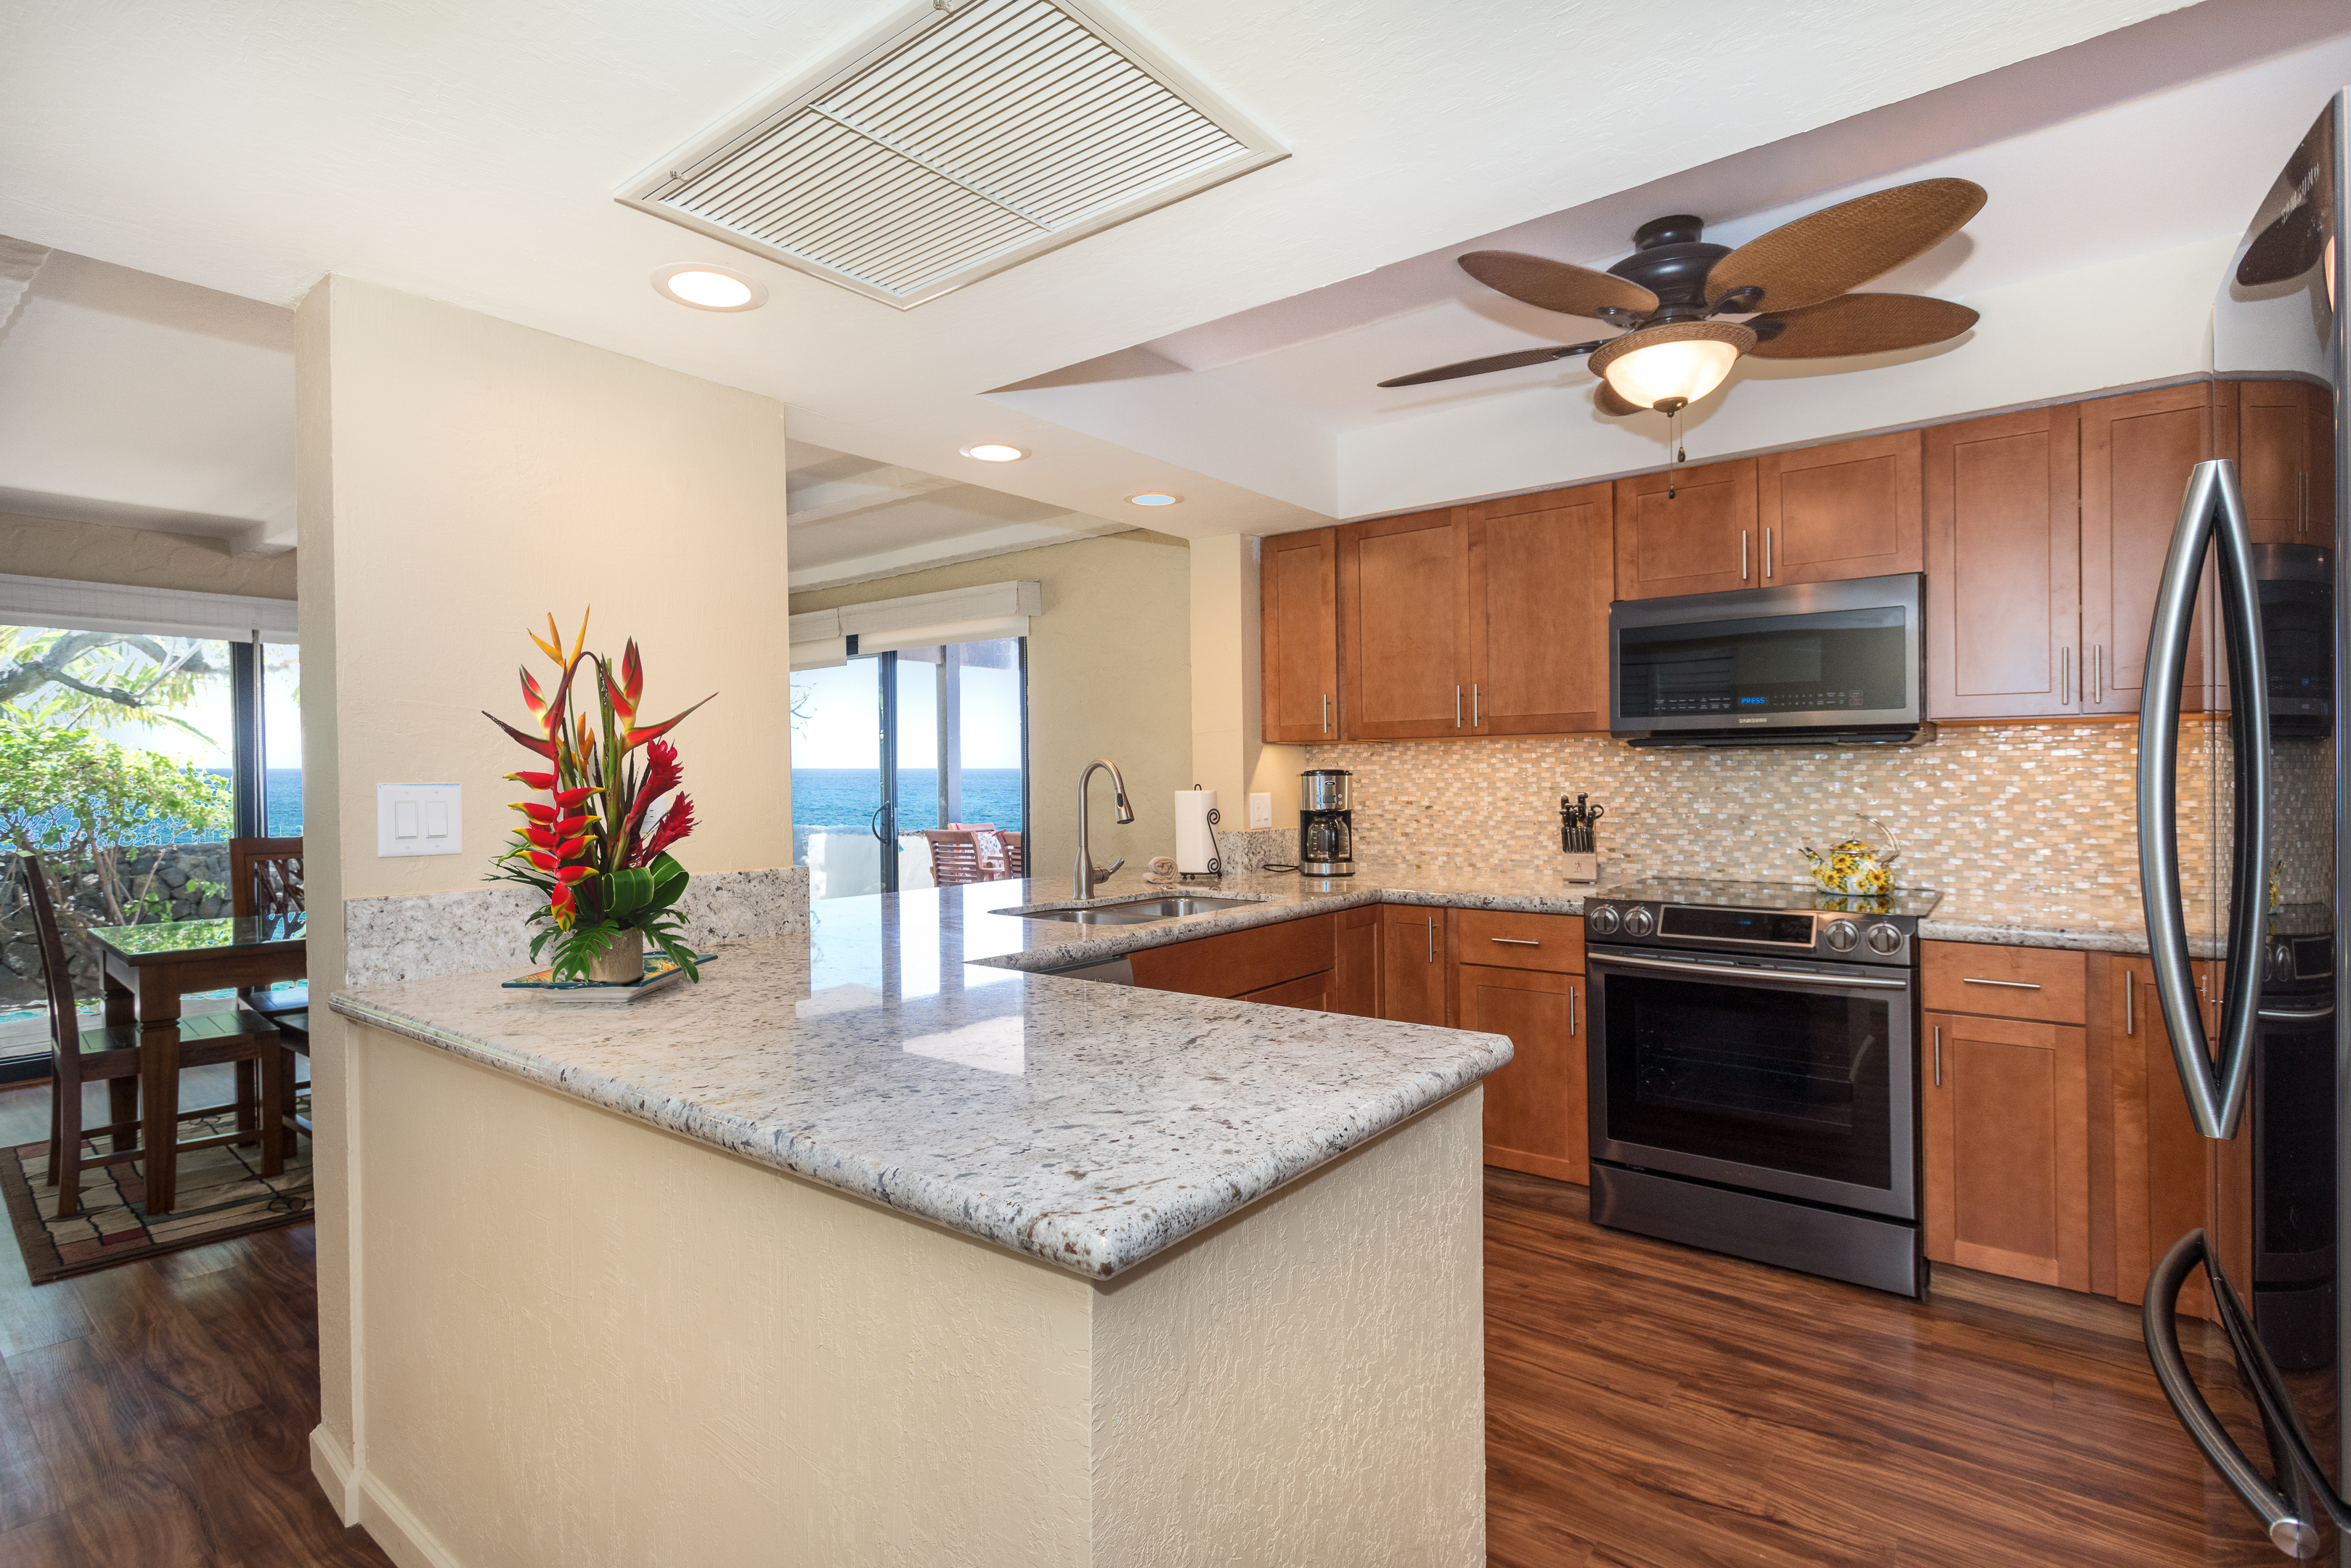 Enjoy your renovated kitchen with new high end appliances.